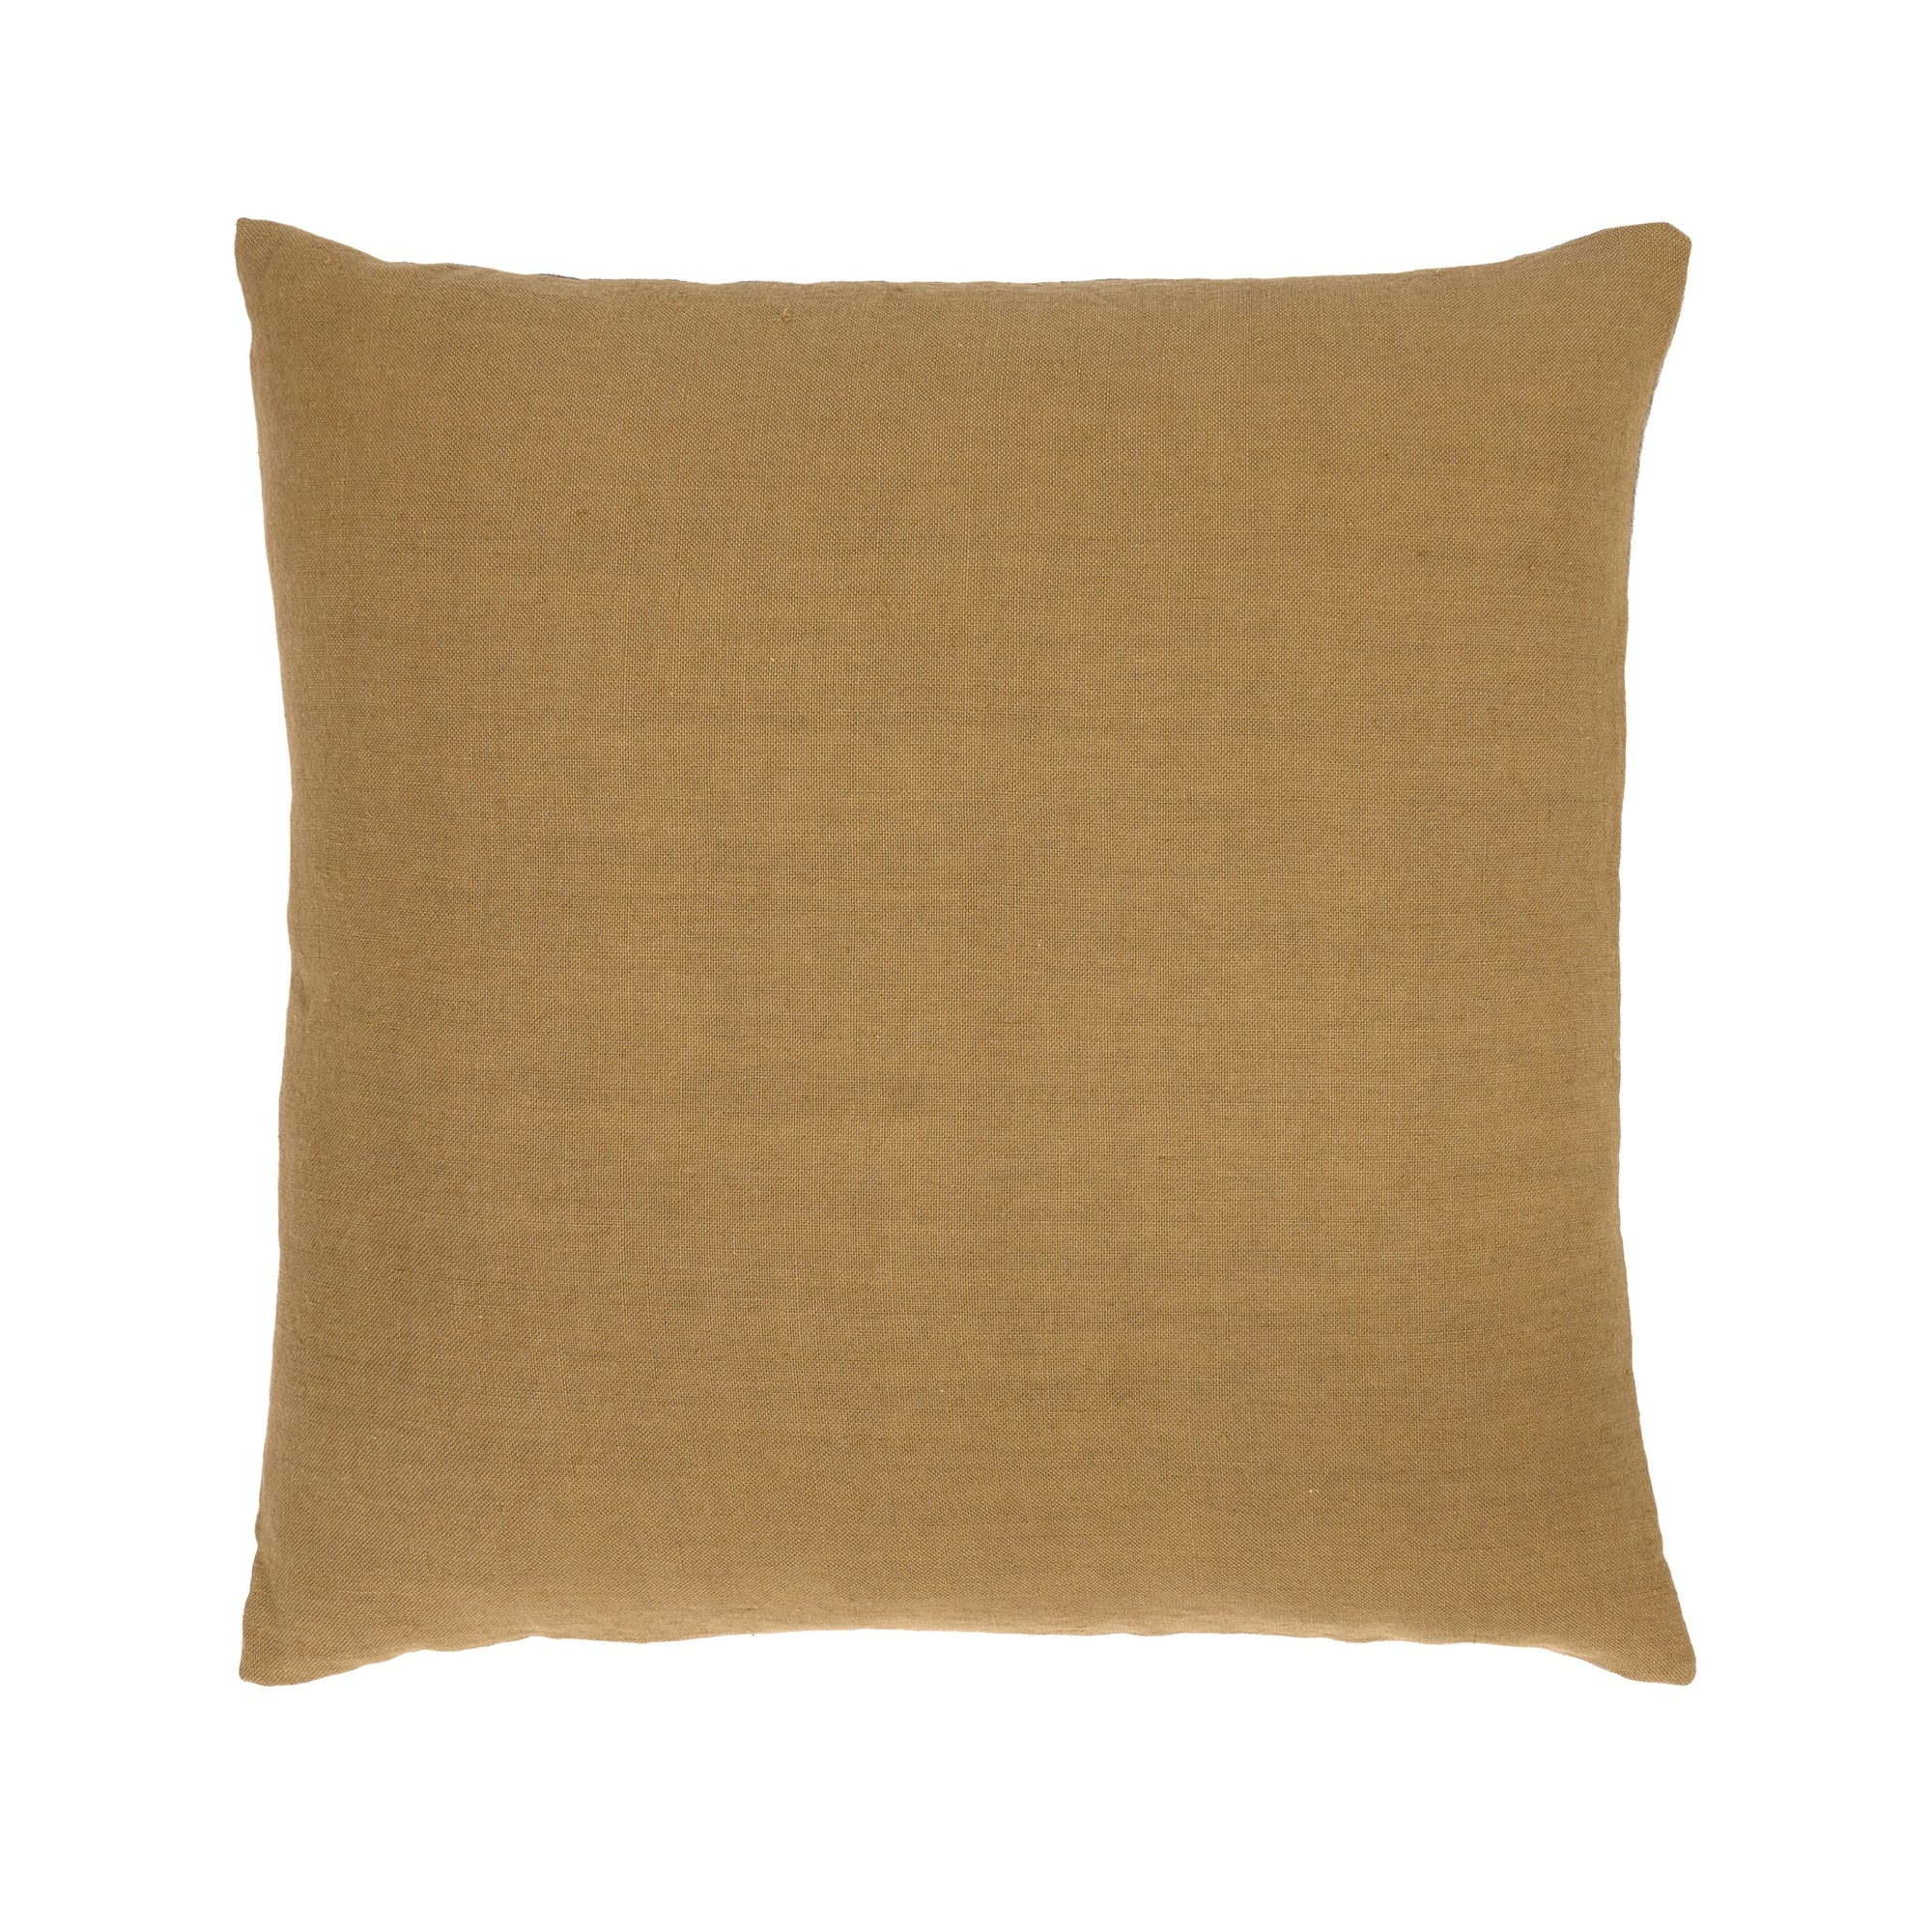 Camel Linen Sauvage cushion